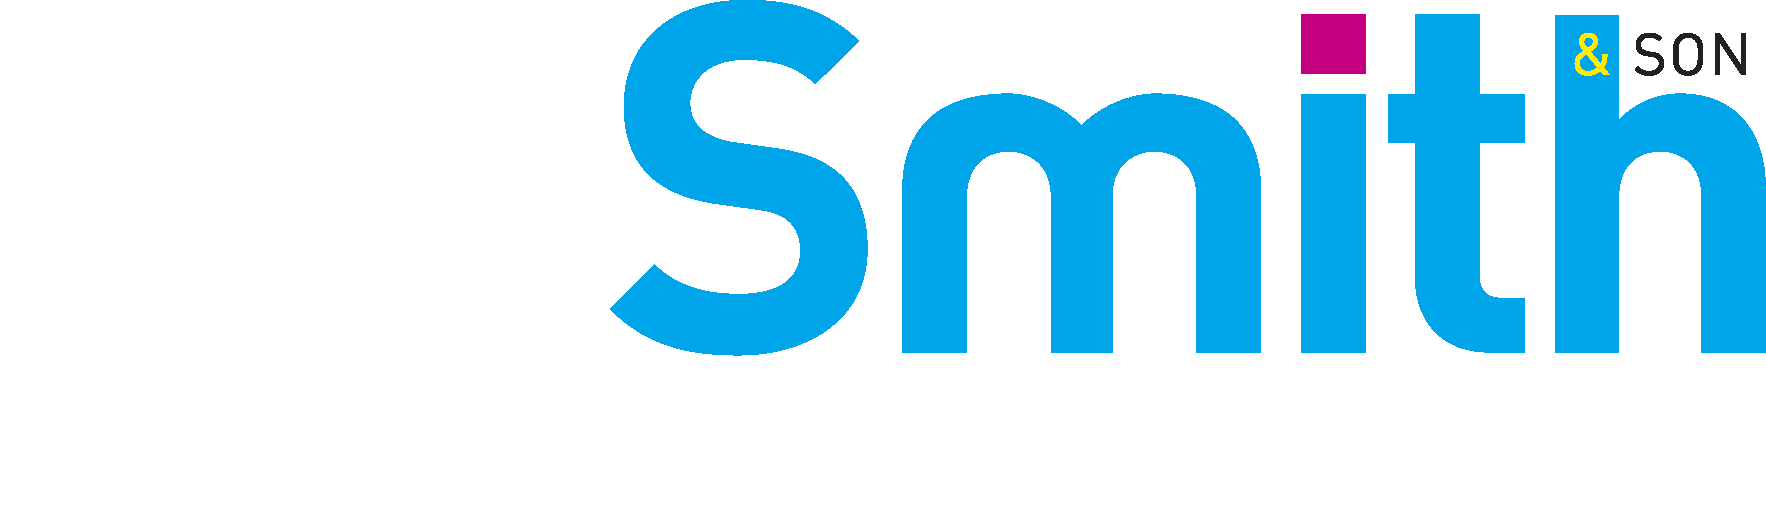 GHSmith & Son Design Printing Publishing